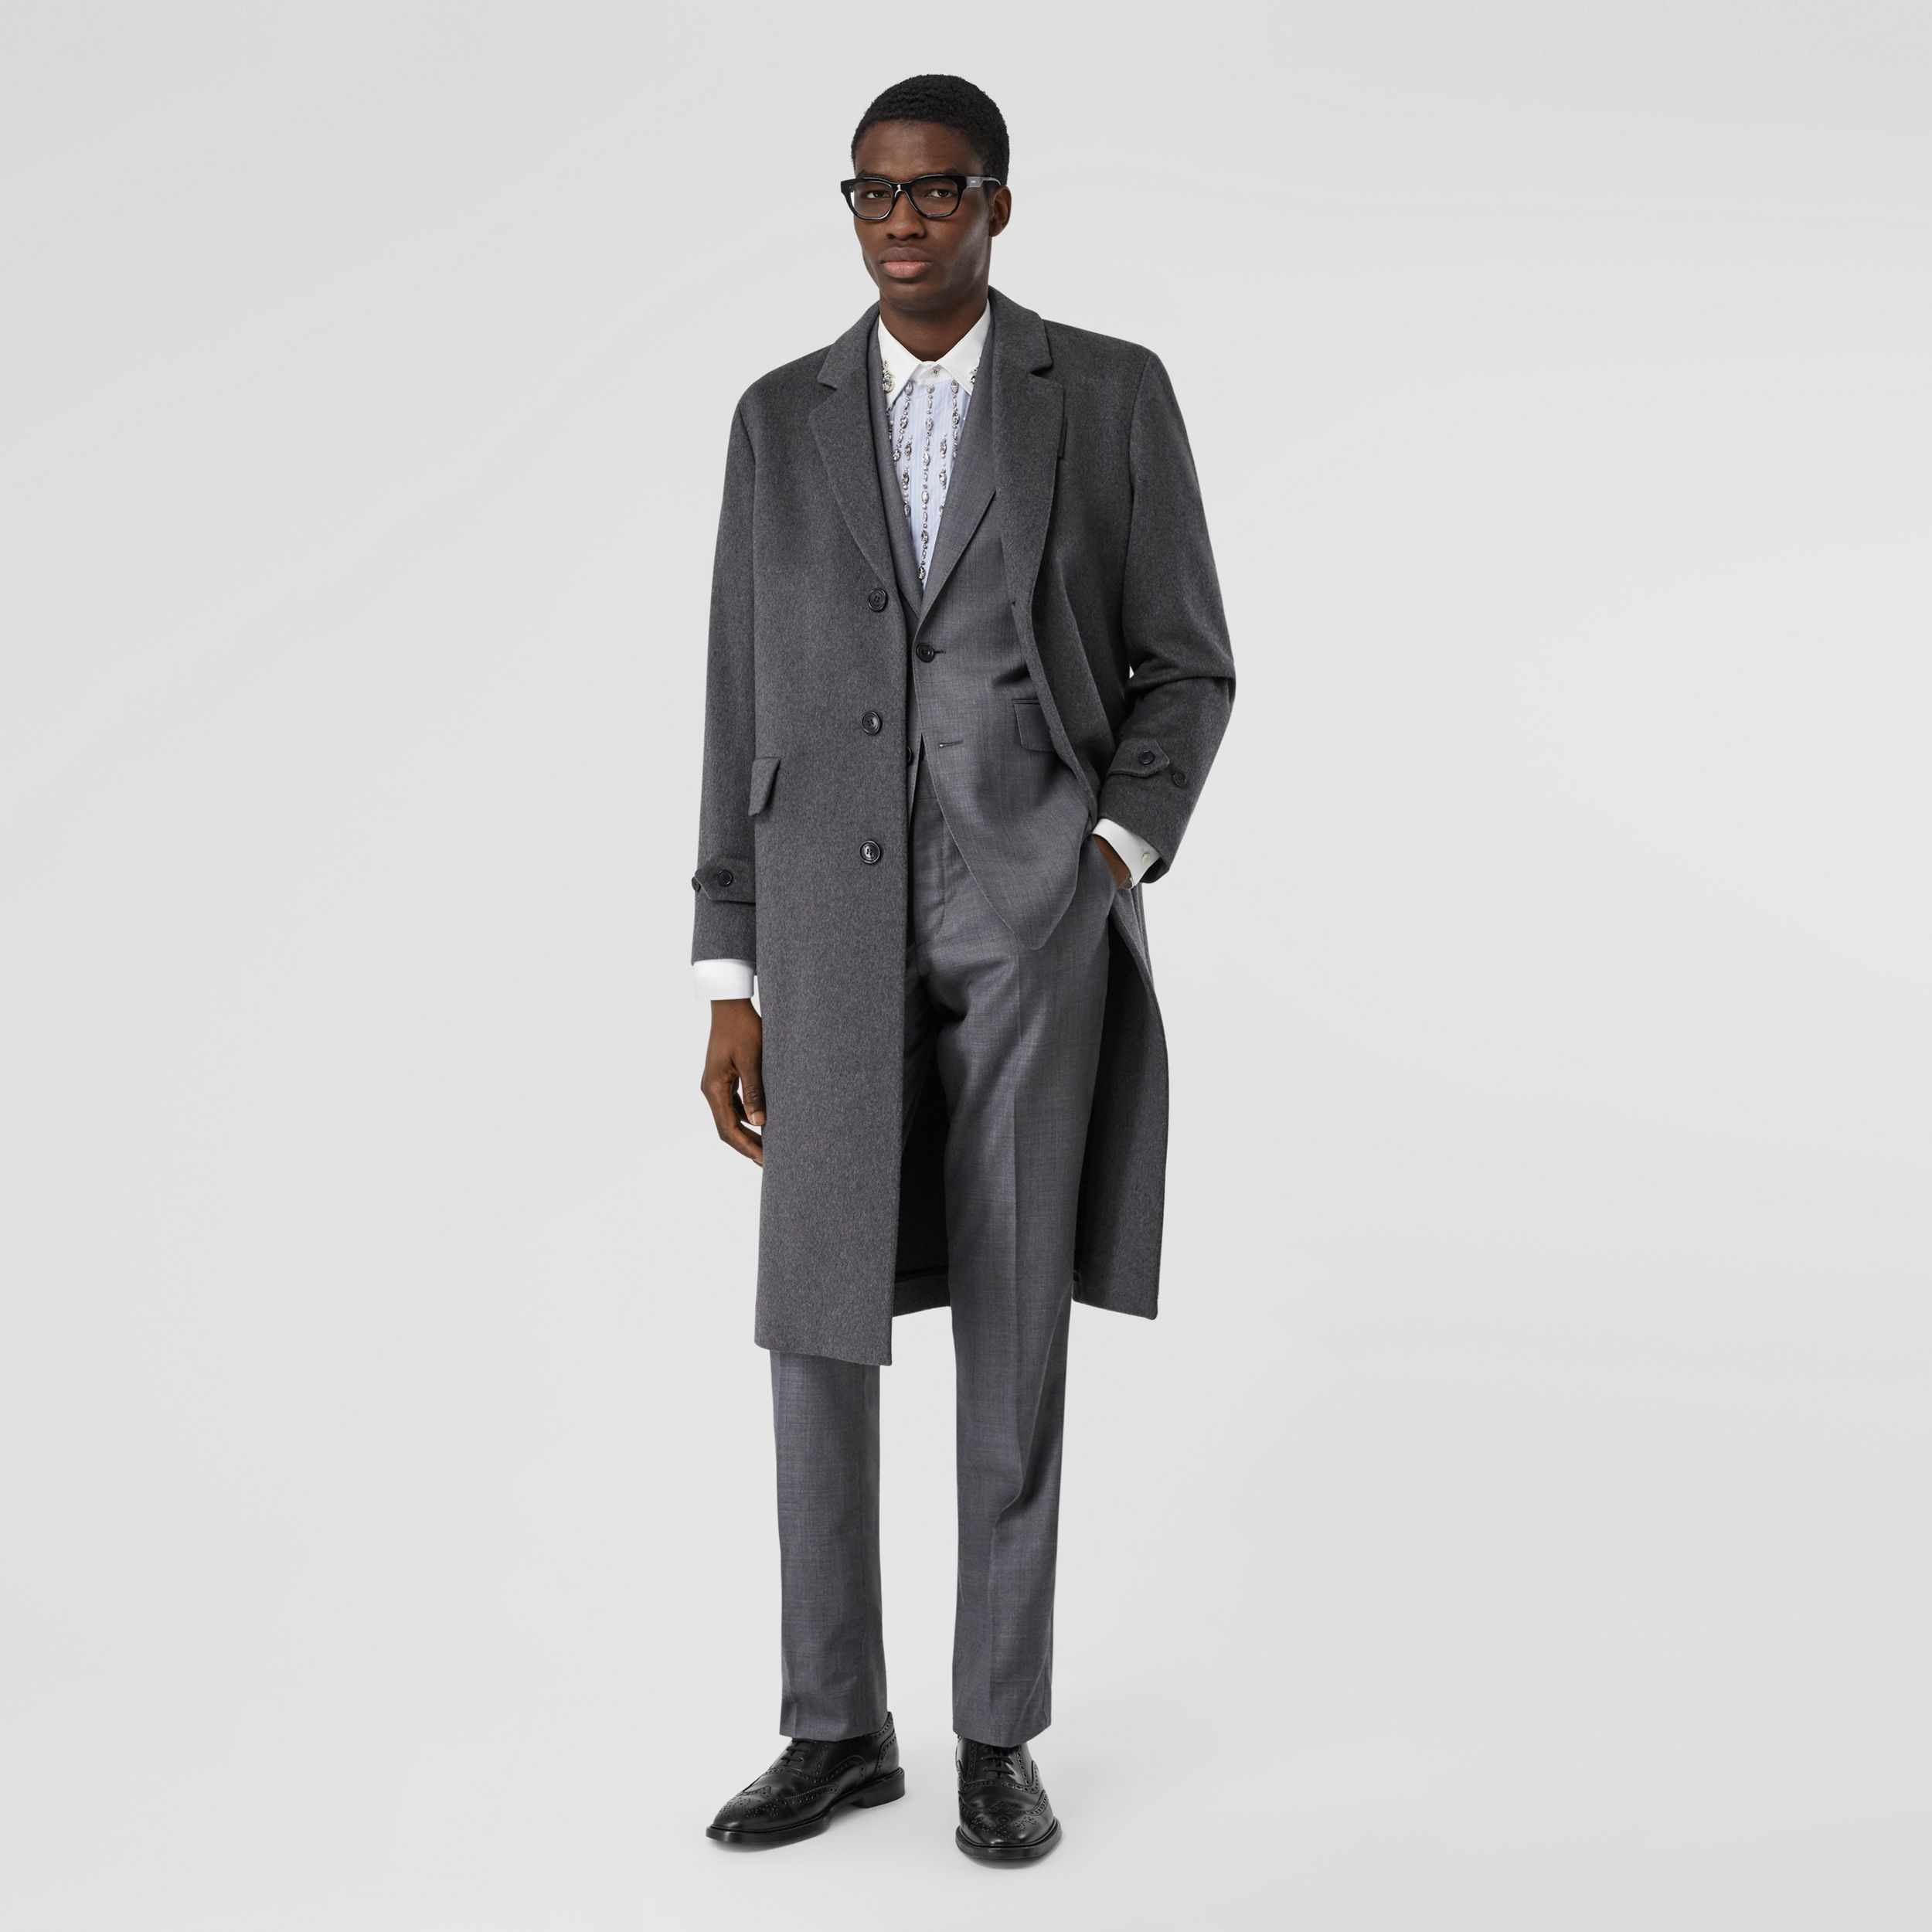 Cashmere Lab Coat in Pewter Melange - Men | Burberry Hong Kong S.A.R - 1